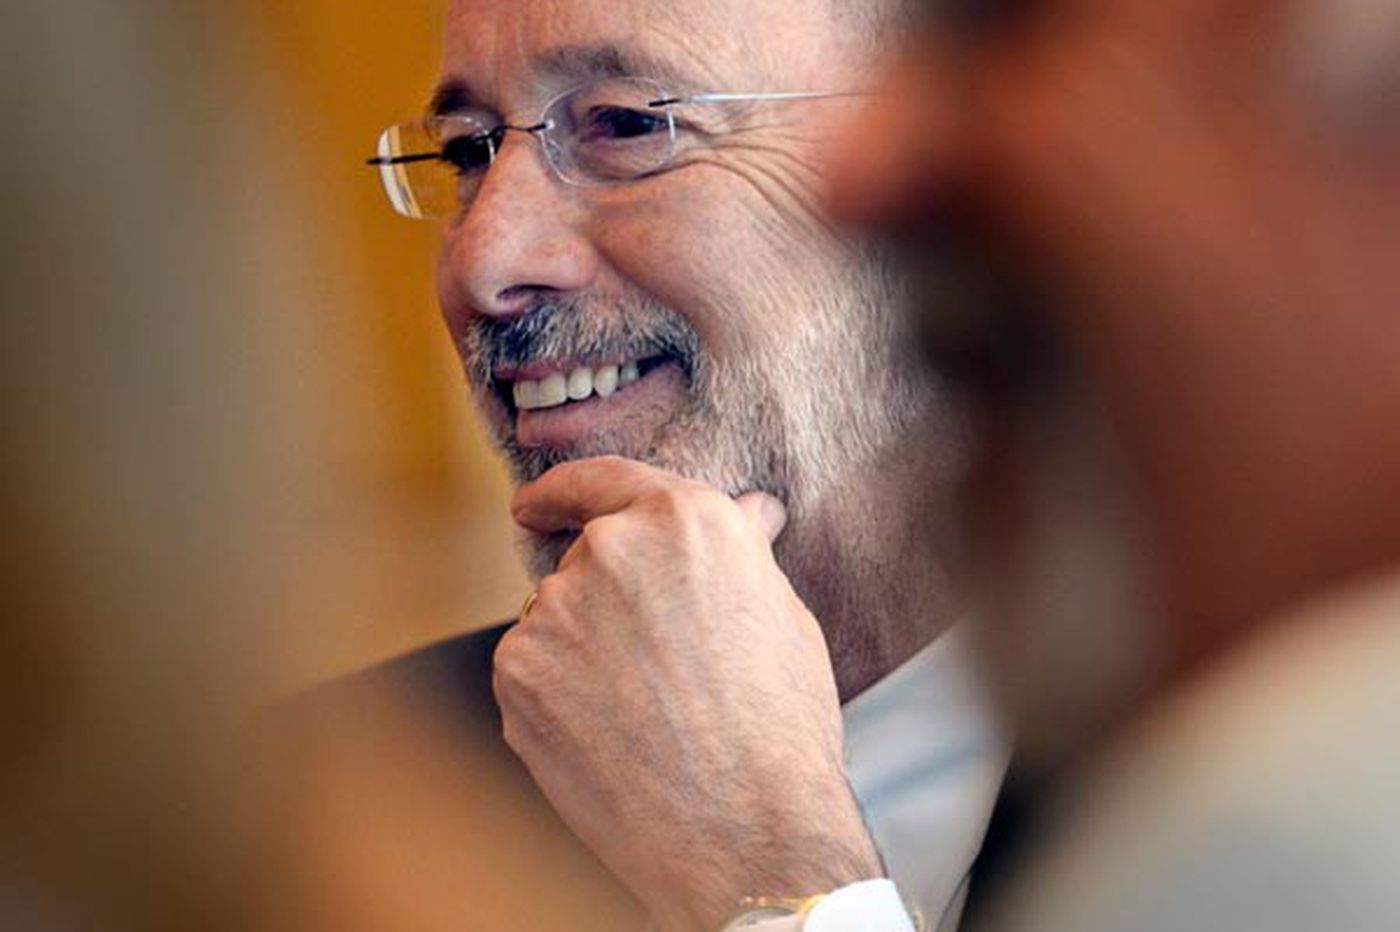 Tom Wolf seeks to bring small-town ethos to gubernatorial race